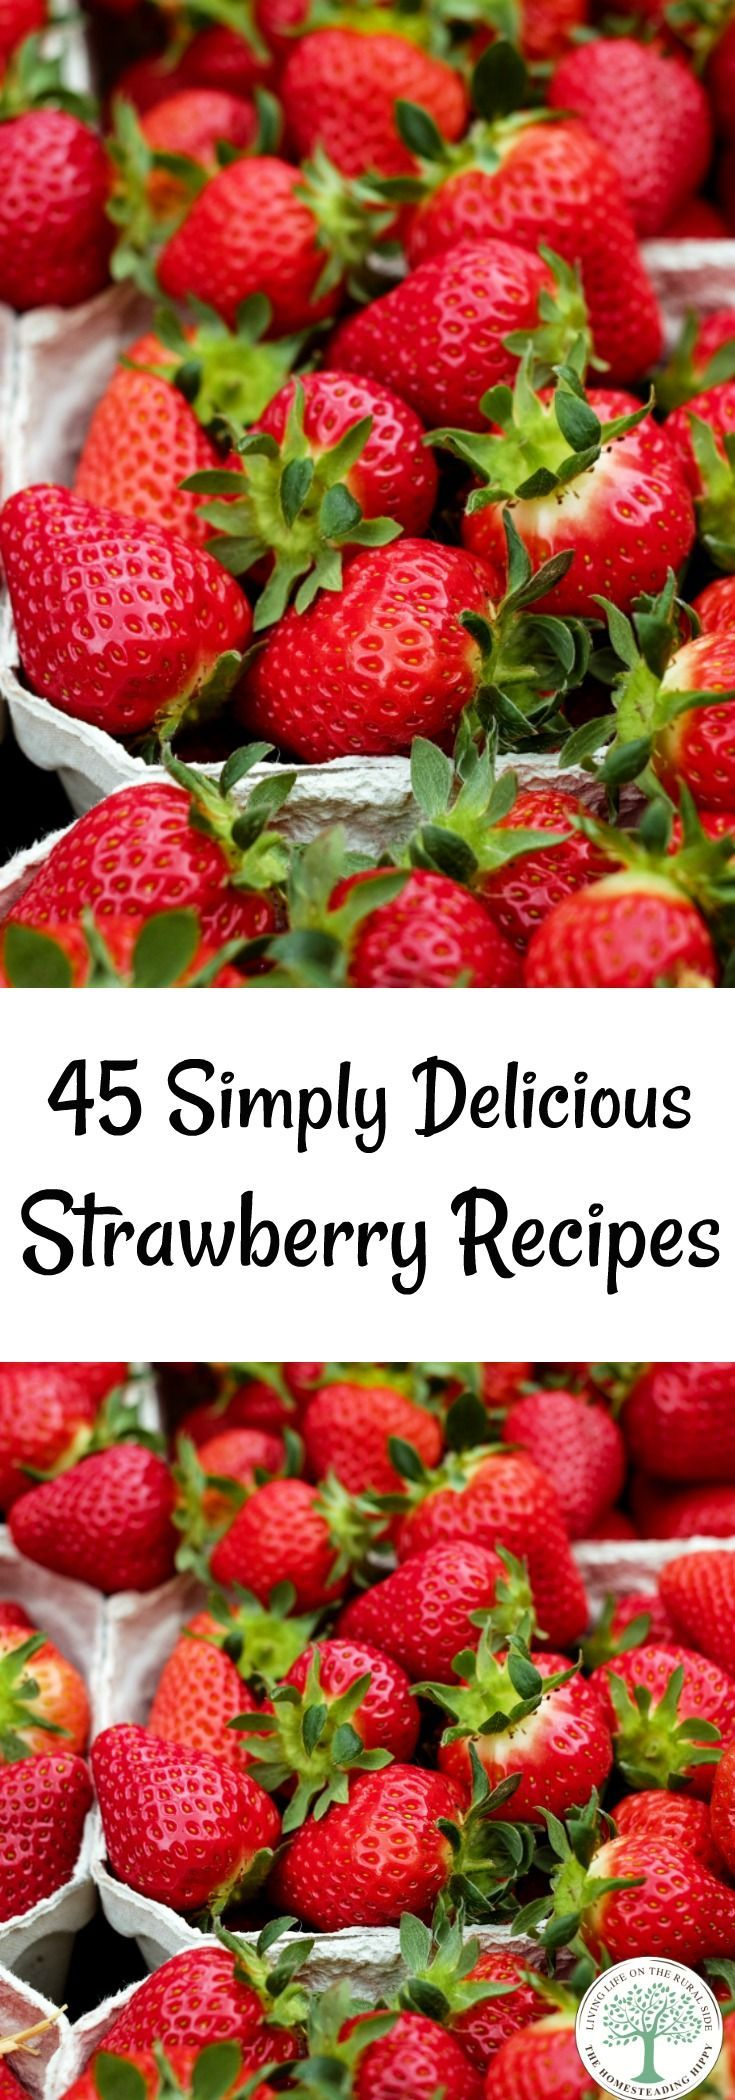 Here are over 45 delicious ways to enjoy these sweet berries in this Ultimate Simple Strawberry Recipes Collection! The Homesteading Hippy via @homesteadhippy